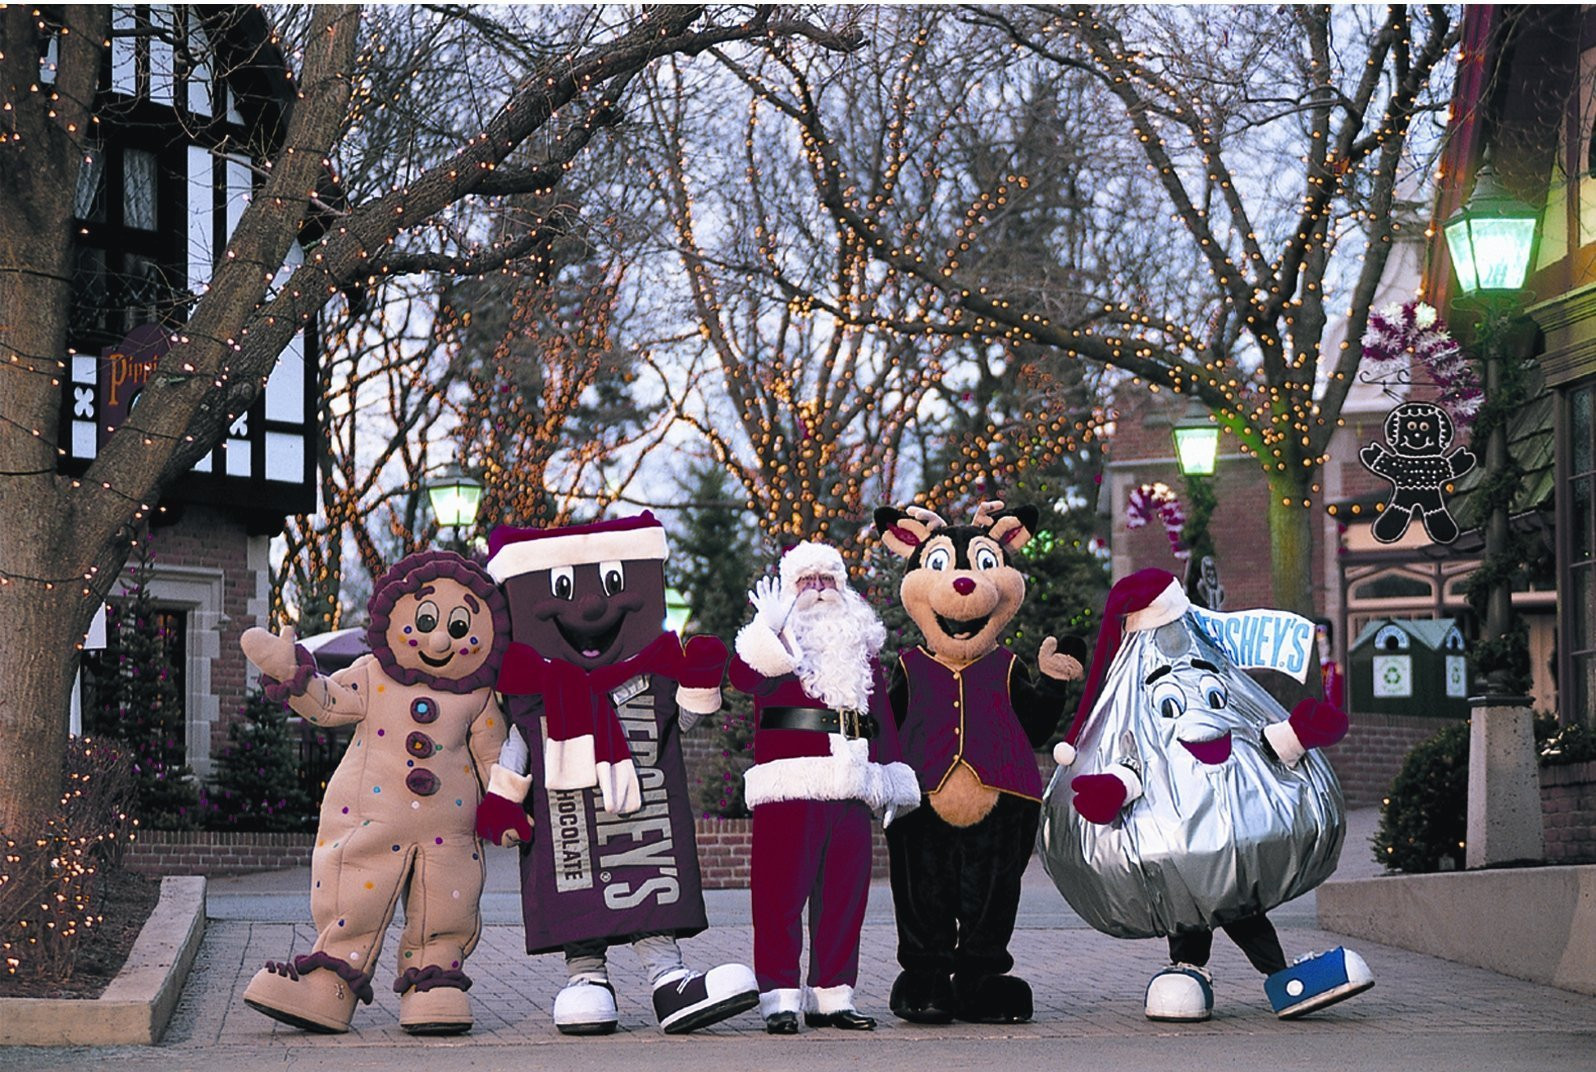 Christmas Candy Lane Hershey Park  Hersheypark s Christmas Candylane will feature Santa s